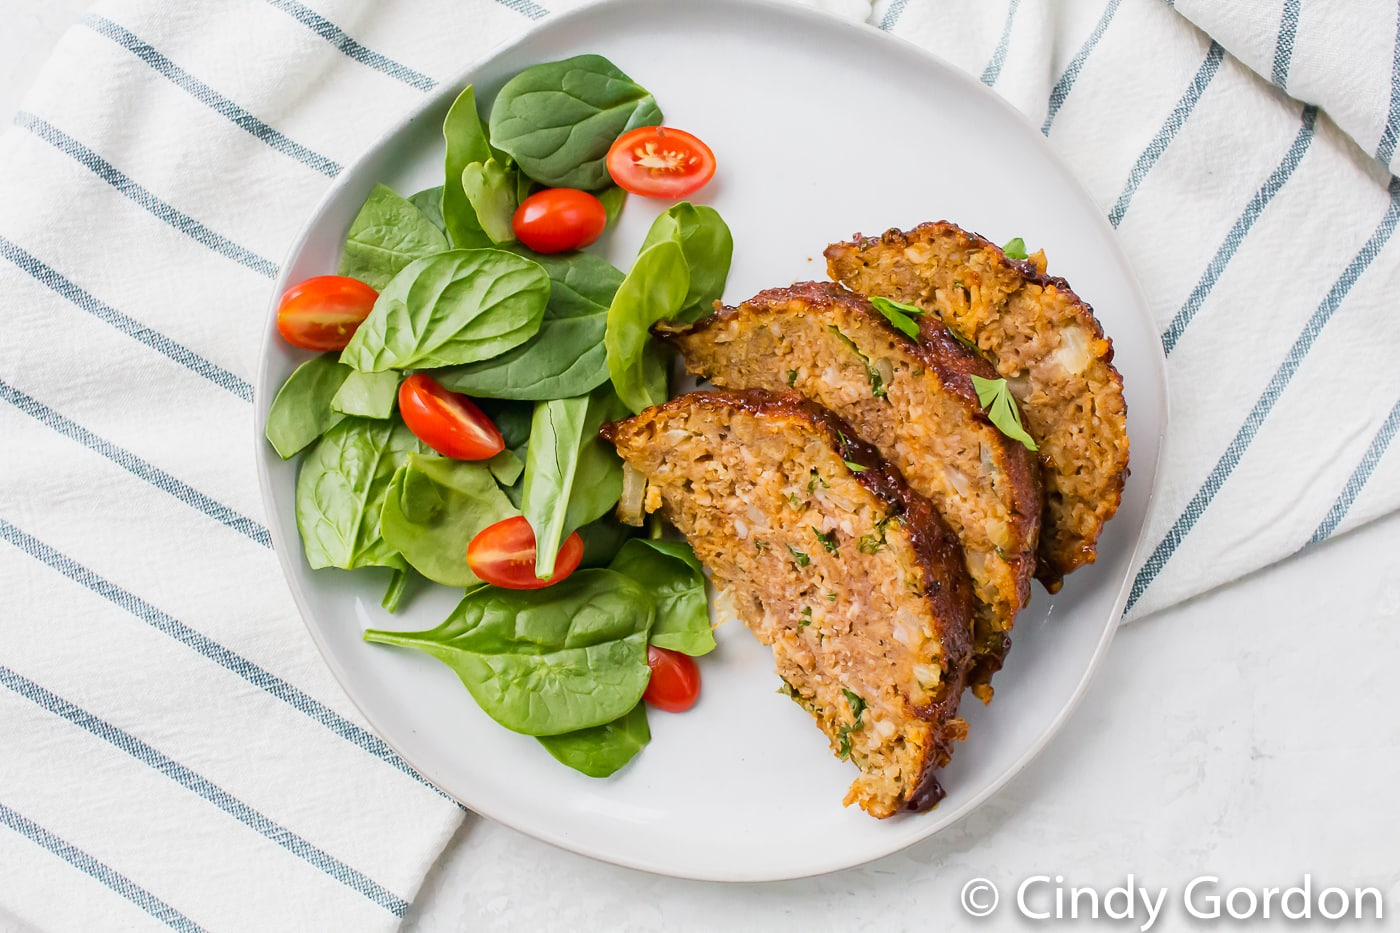 Vegetables and meatloaf on a round white plate with a white cloth with blue stripes